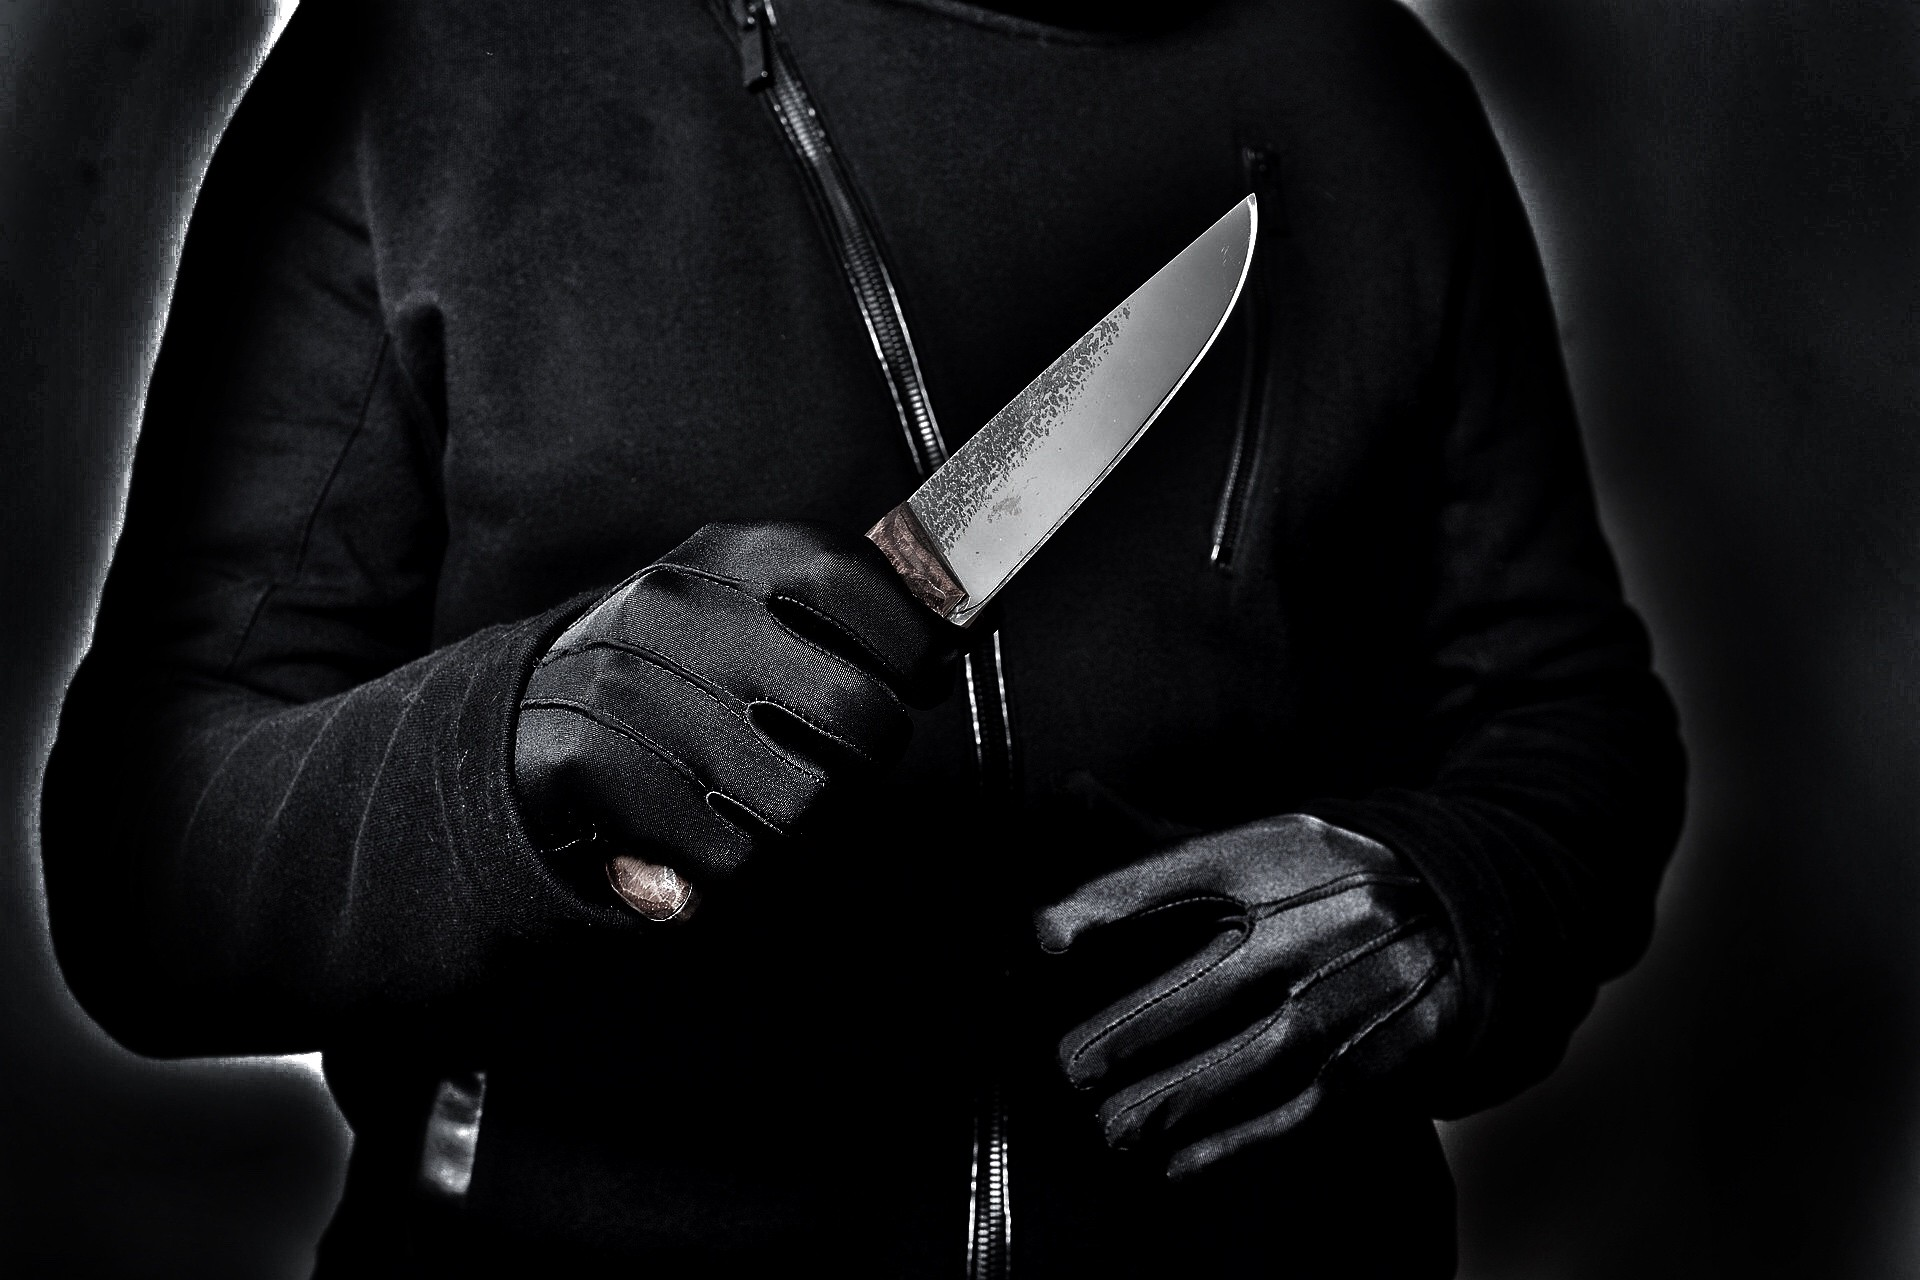 Photo of a person in black with a sharp knife.